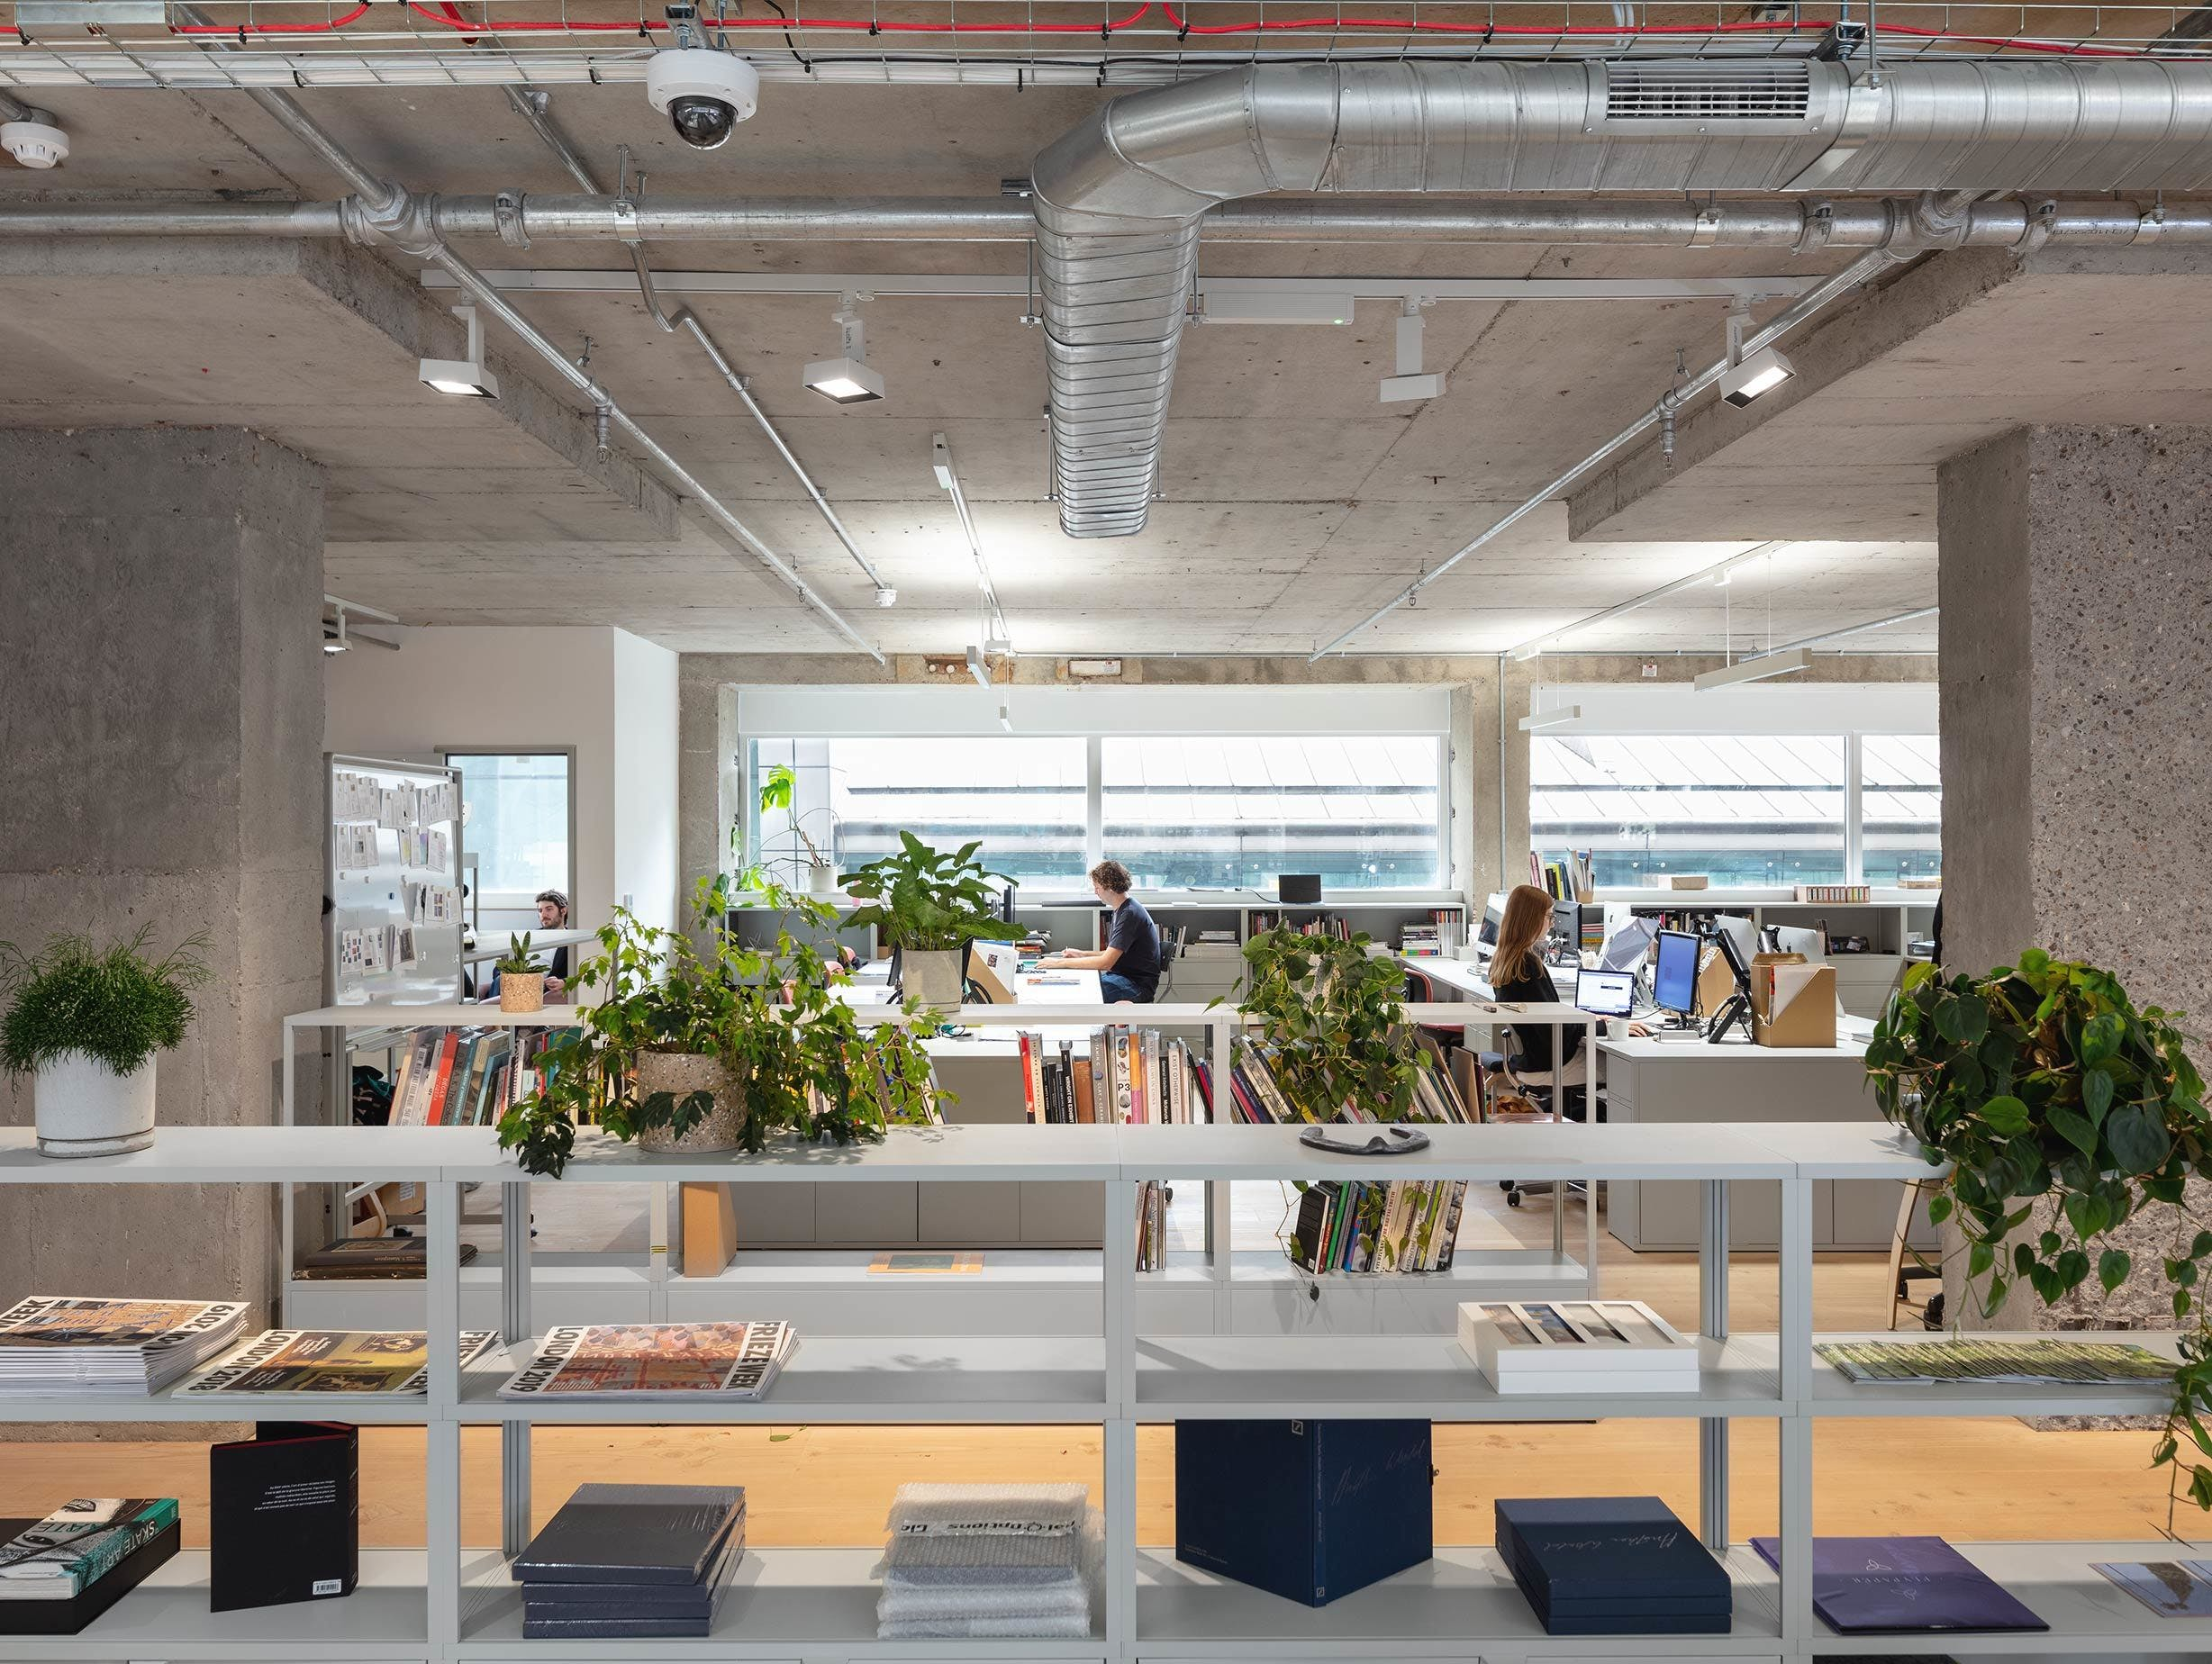 Frieze offices by fleet architects 2 image